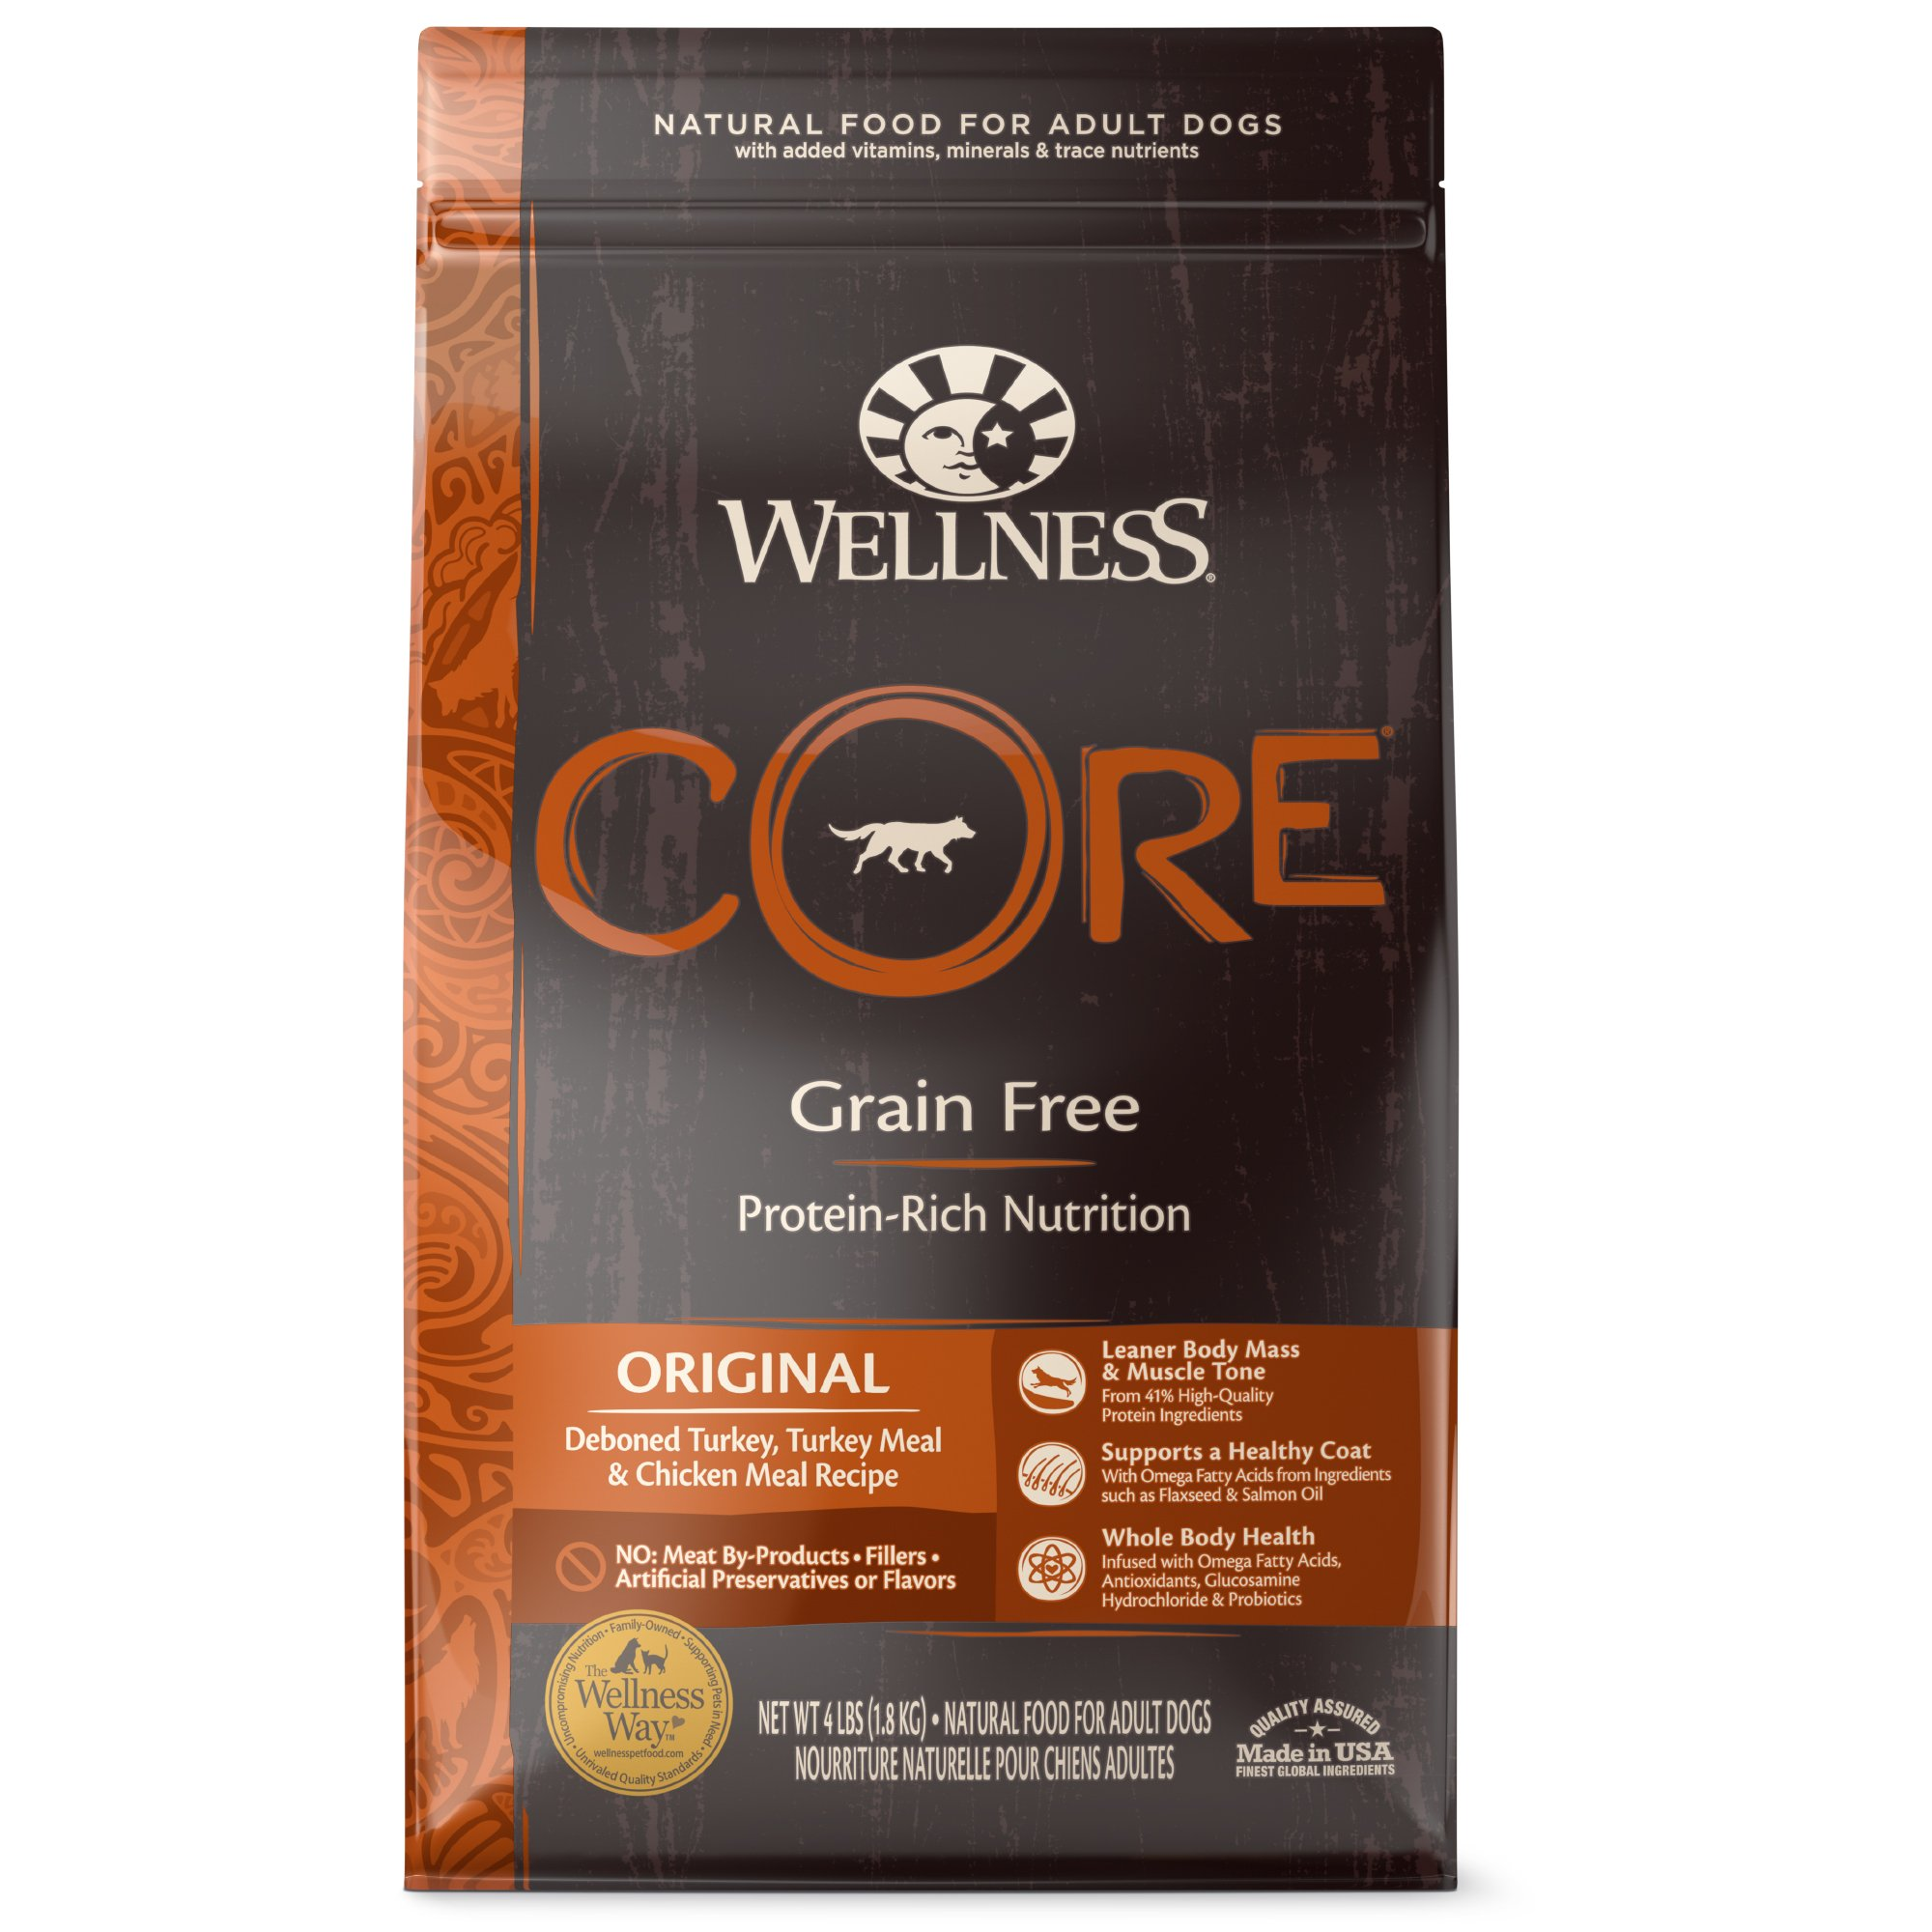 Wellness Core Dog Food Petco